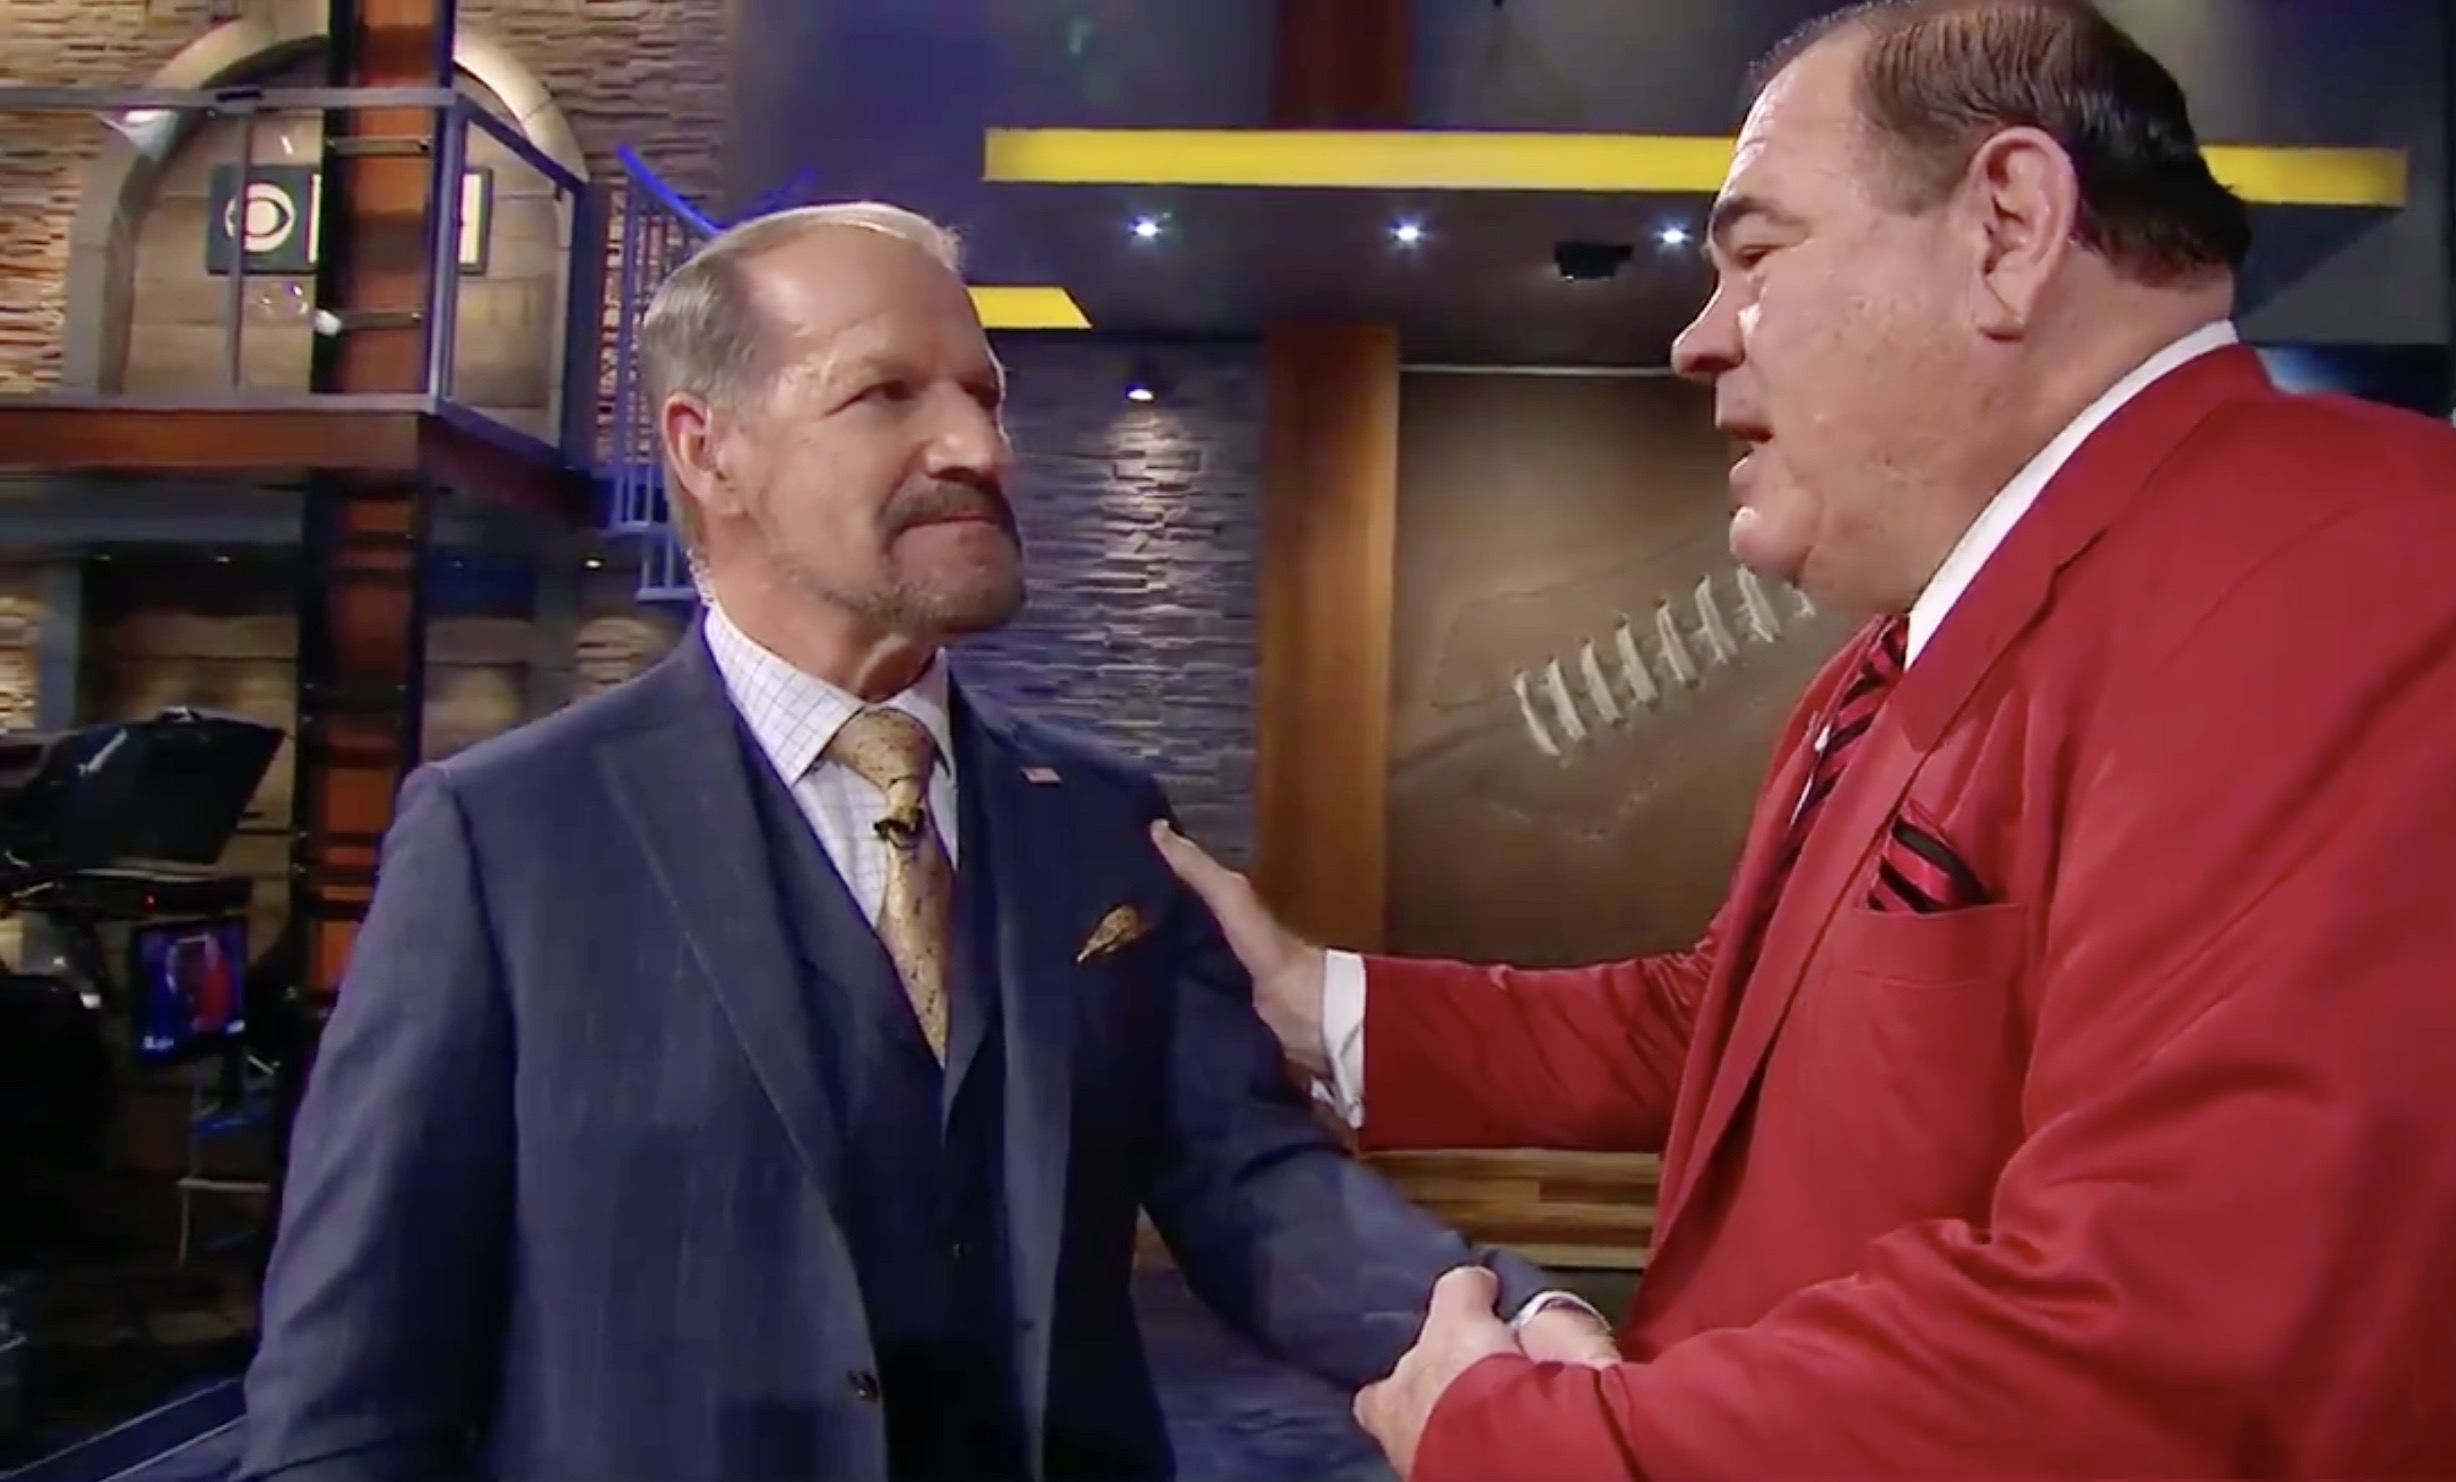 Cowher headed to the Hall of Fame